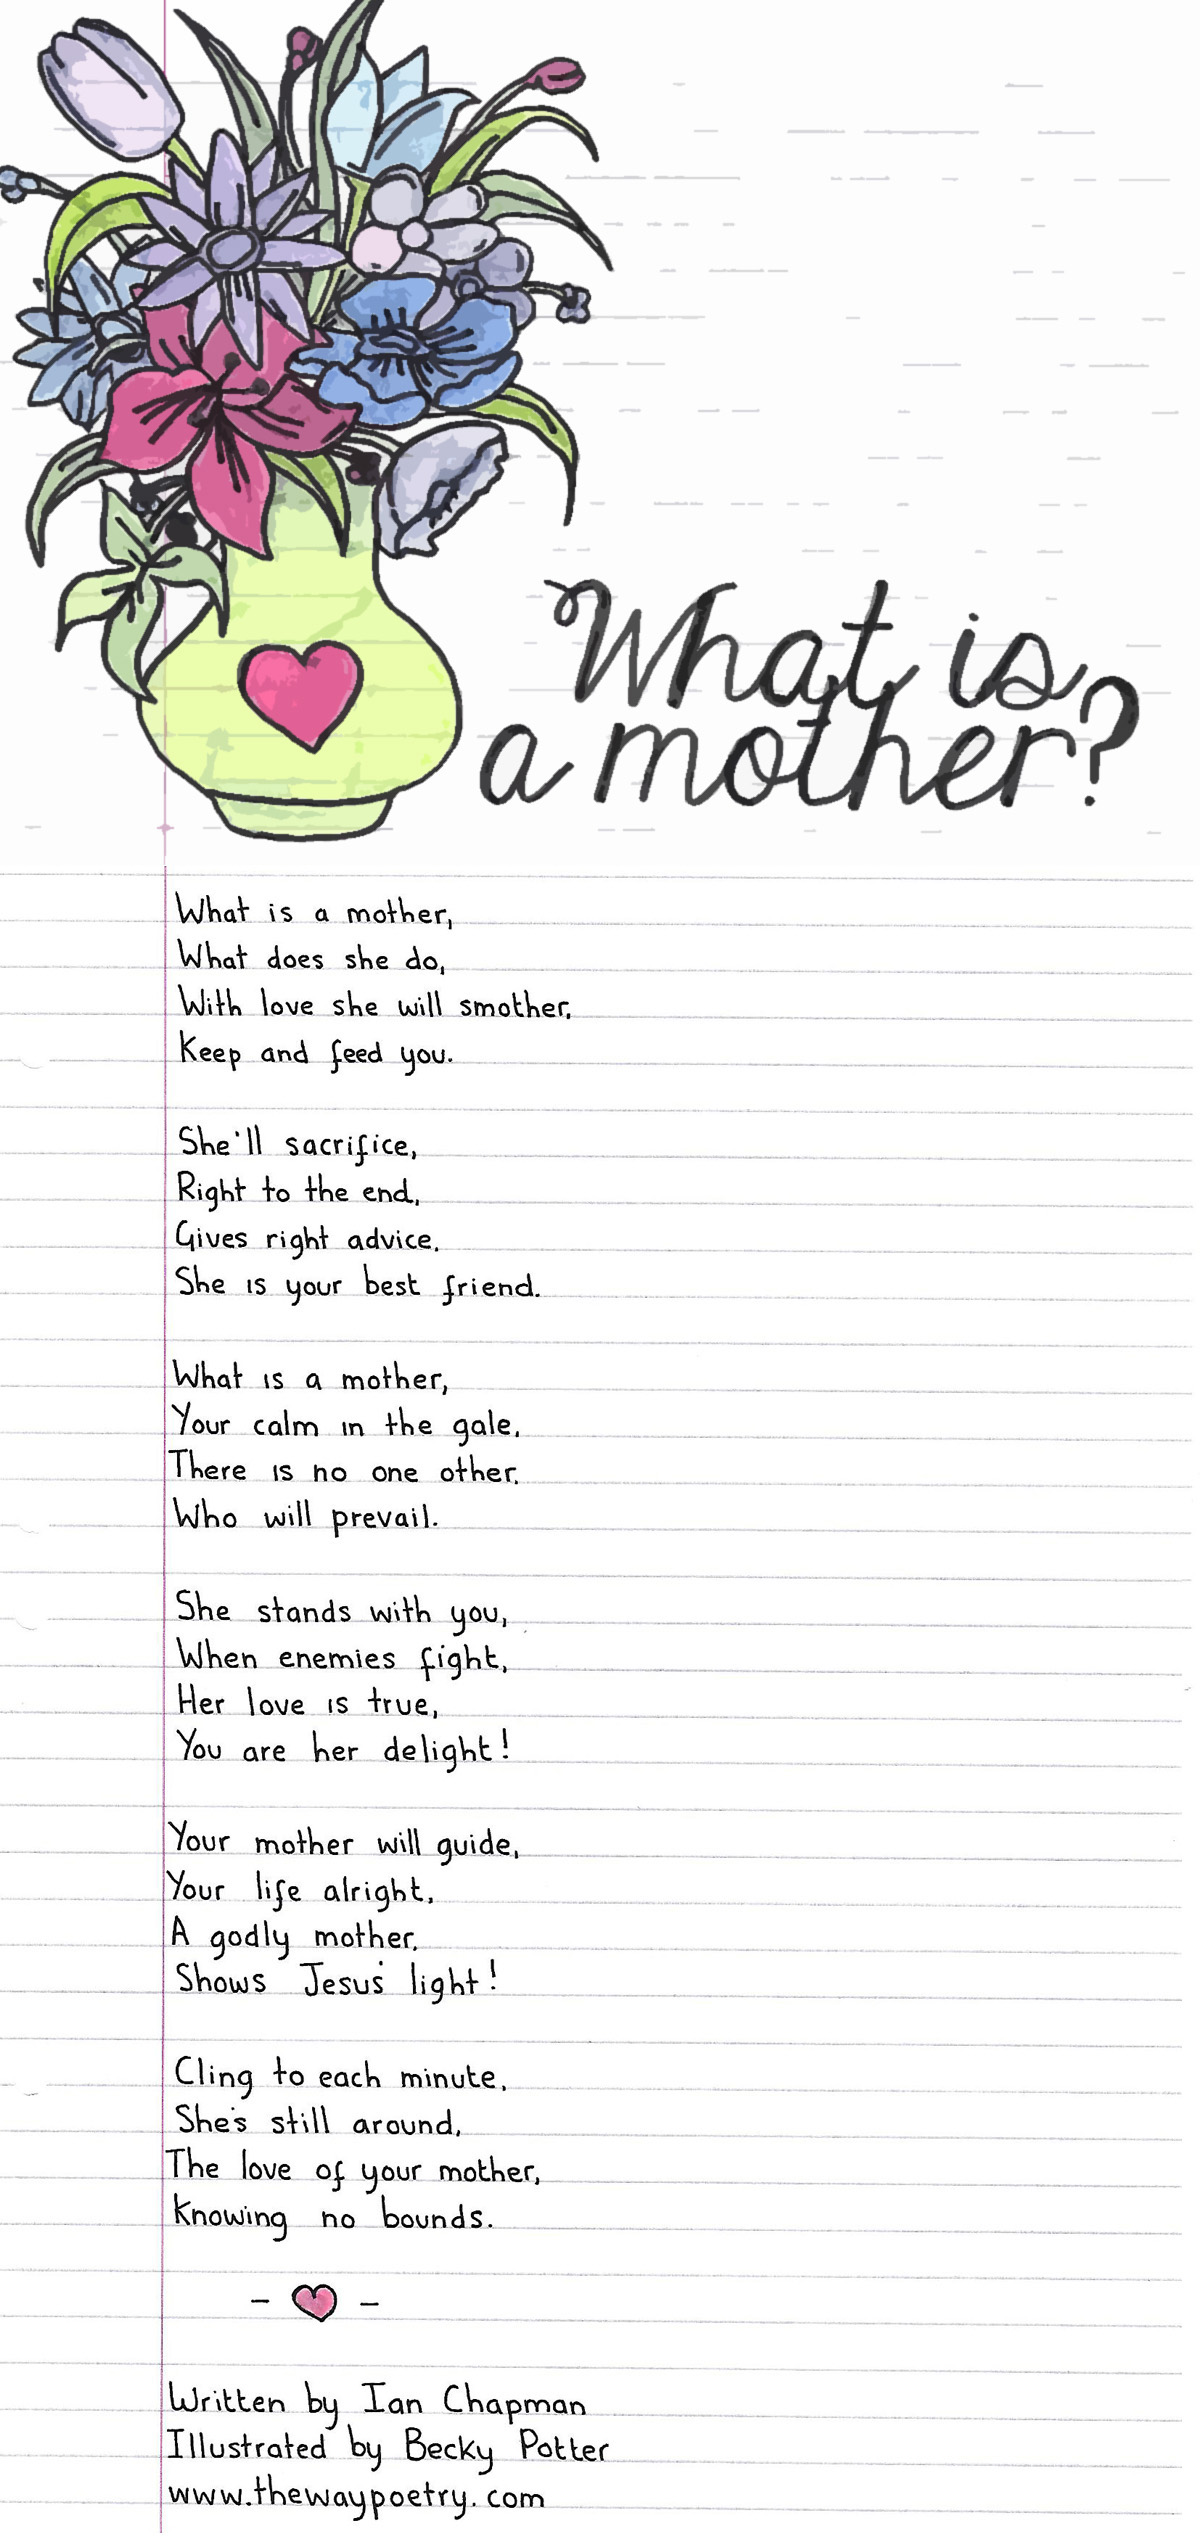 What Is A Mother? by Ian Chapman